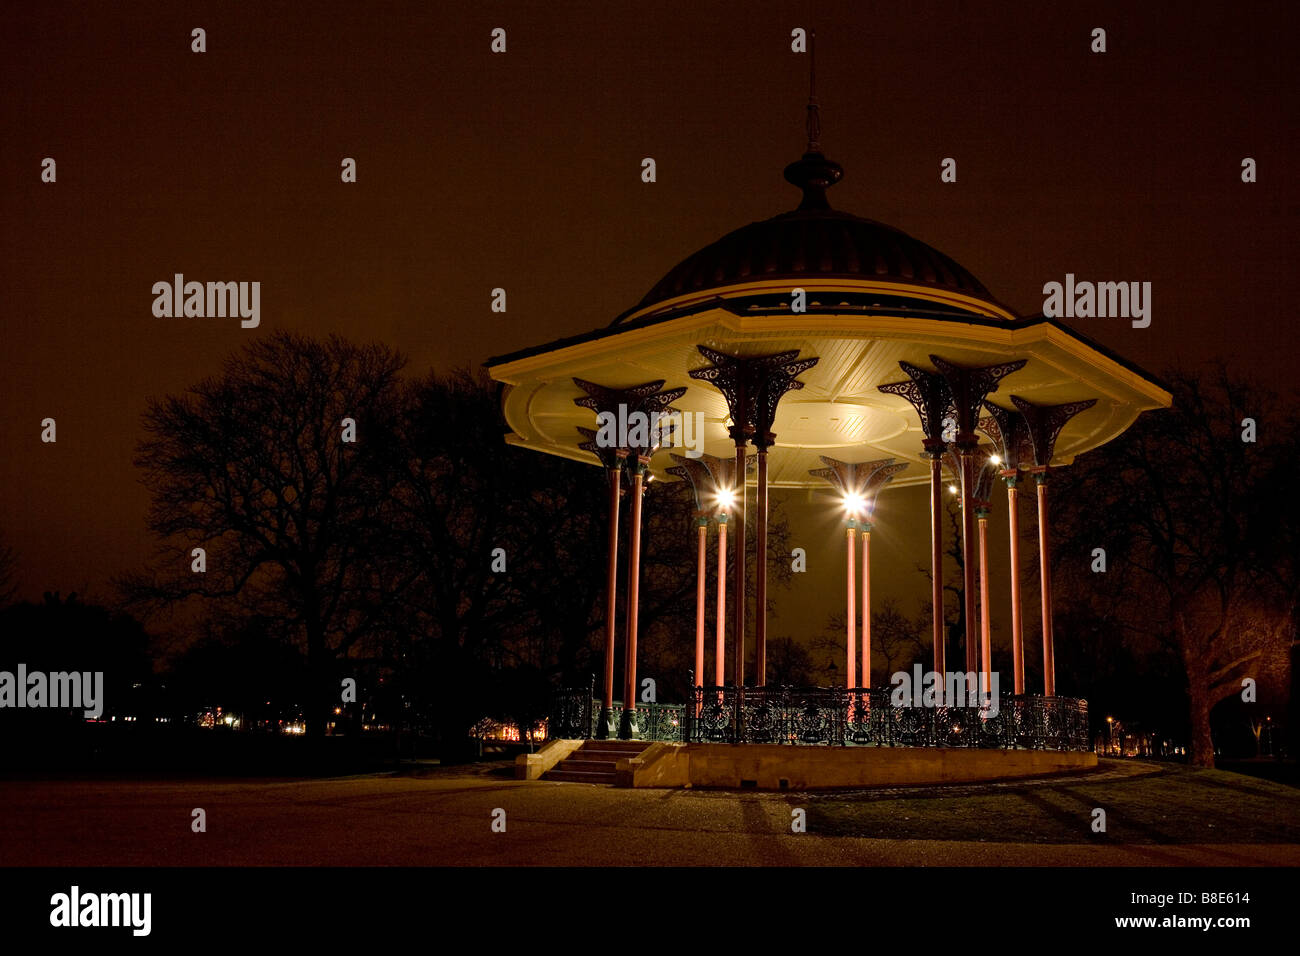 Clapham common bandstand, South London - Stock Image